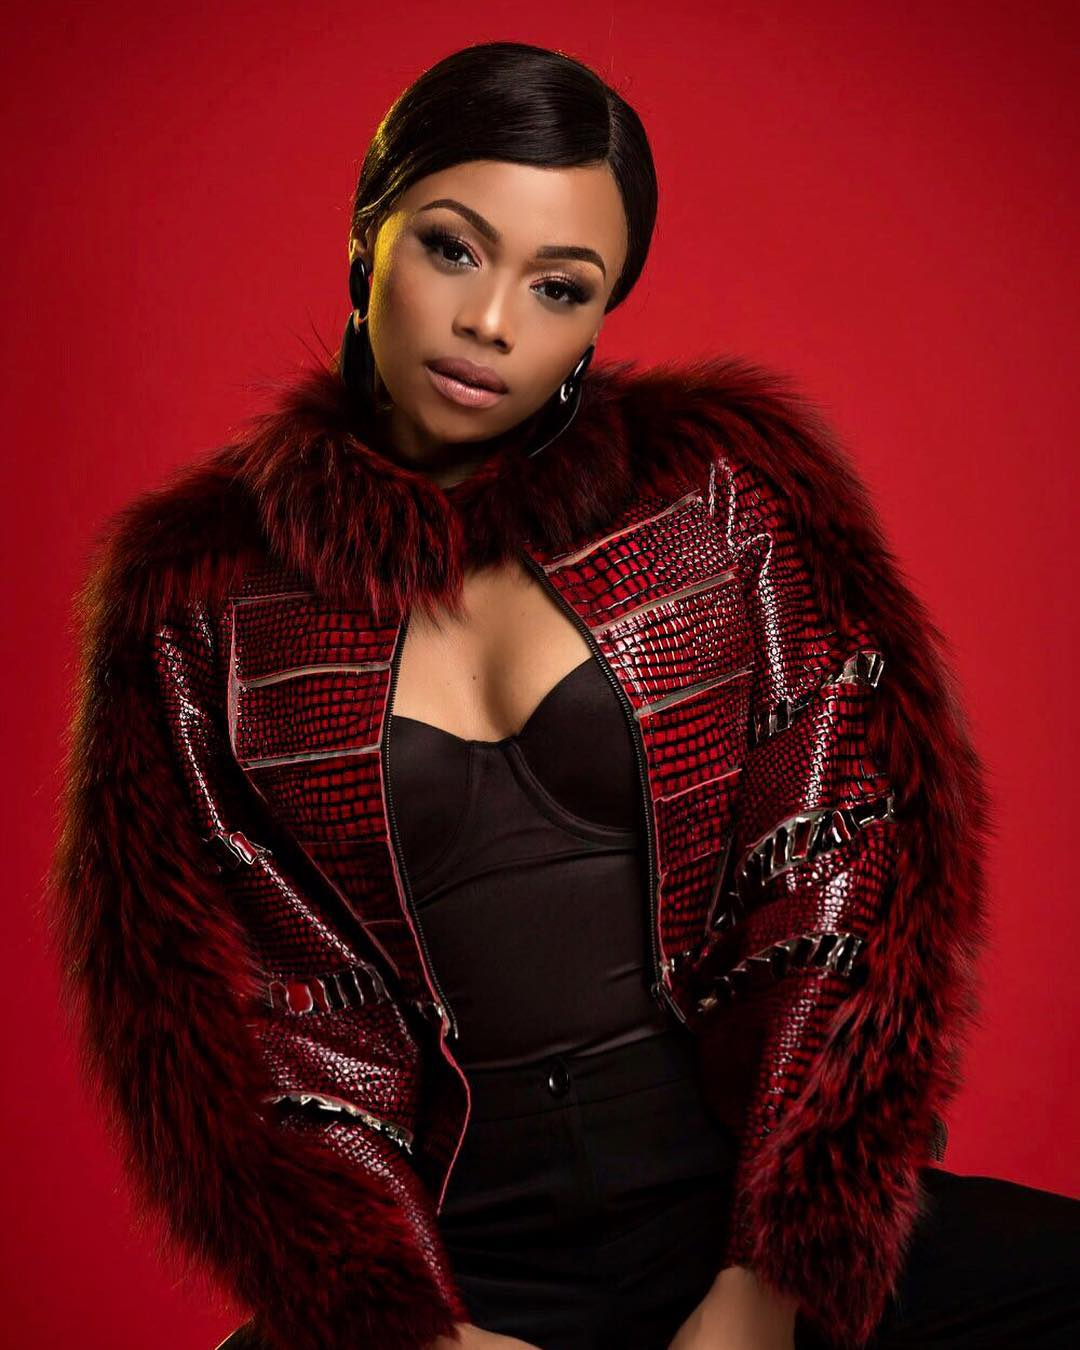 Bonang Matheba slays at London event